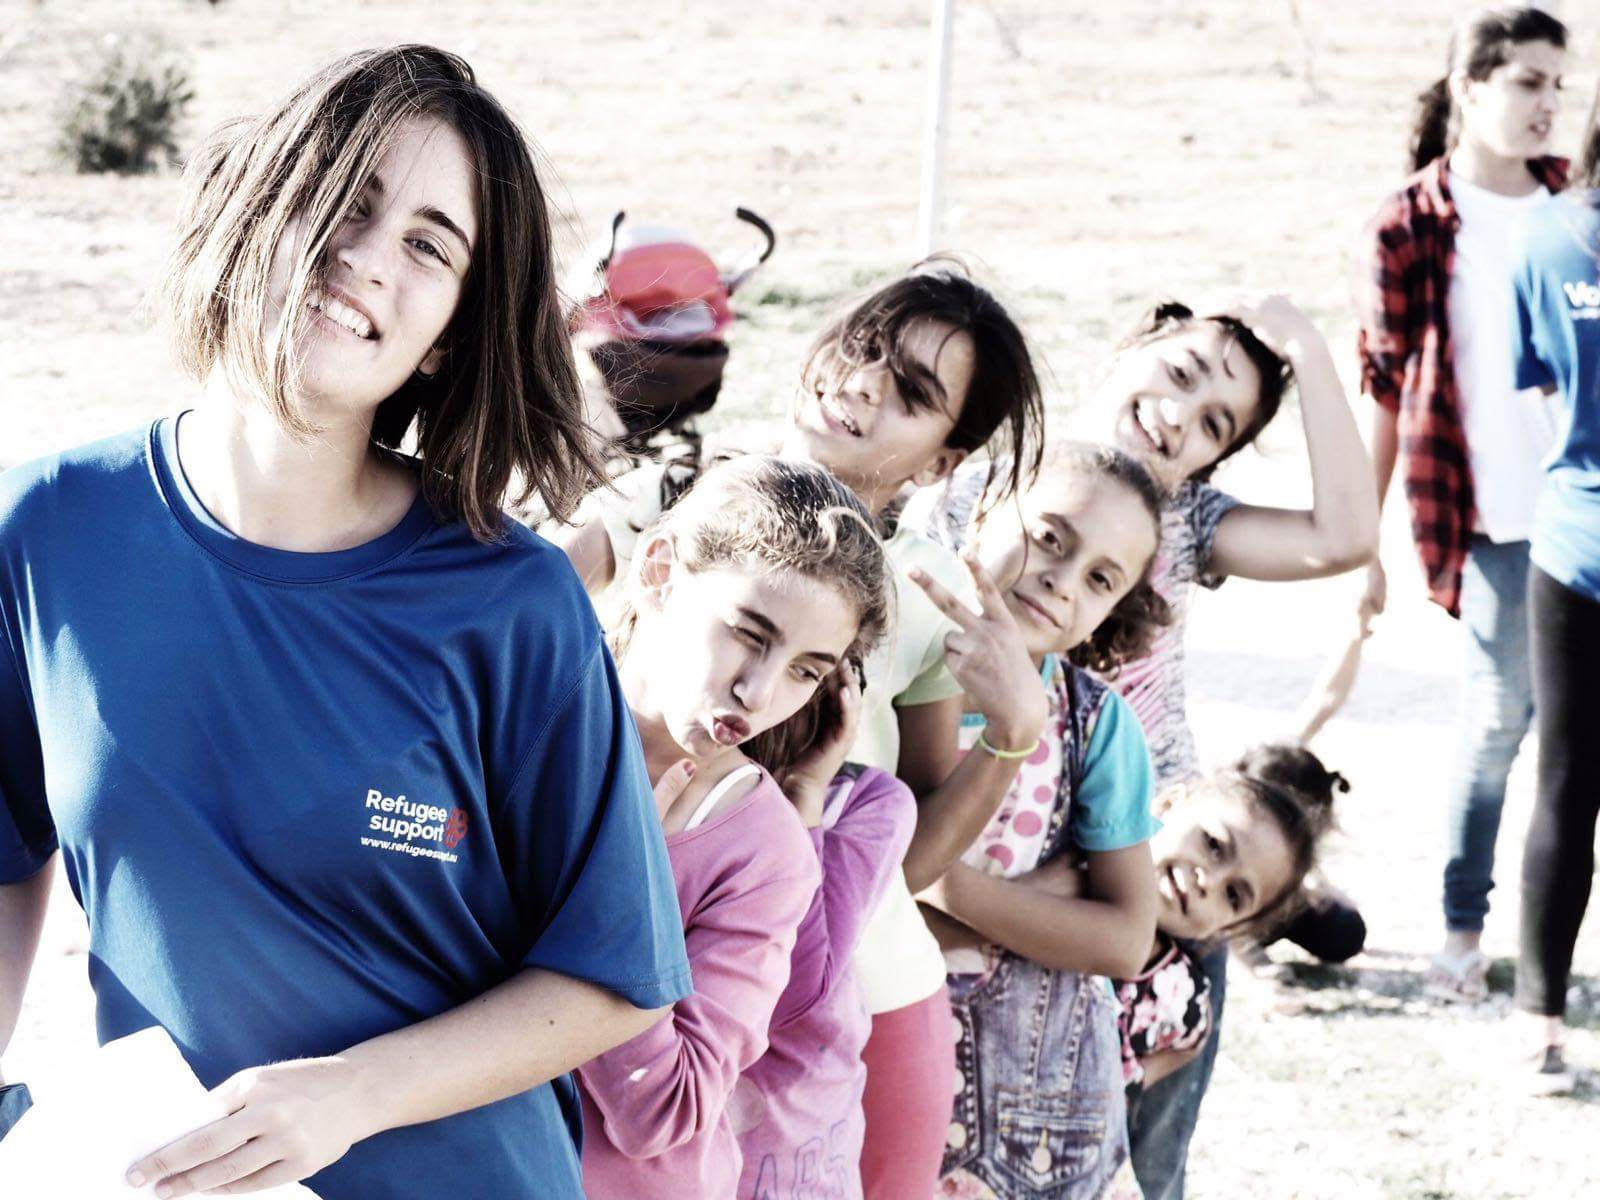 Aid Refugees, Aid refugees in Greece, Aid With Dignity, help at refugee camps, Help Refugees, Help Refugees in Greece, Help Syrian Refugees, Raise Money for Refugees, Refugee Stories, Refugee Support, Refugee Support Europe, Refugee Support Greece, Refugees in Greece, Support Refugees, Volunteer in a Refugee Camp, Volunteer in Refugee Camp, Volunteer Refugee Camp